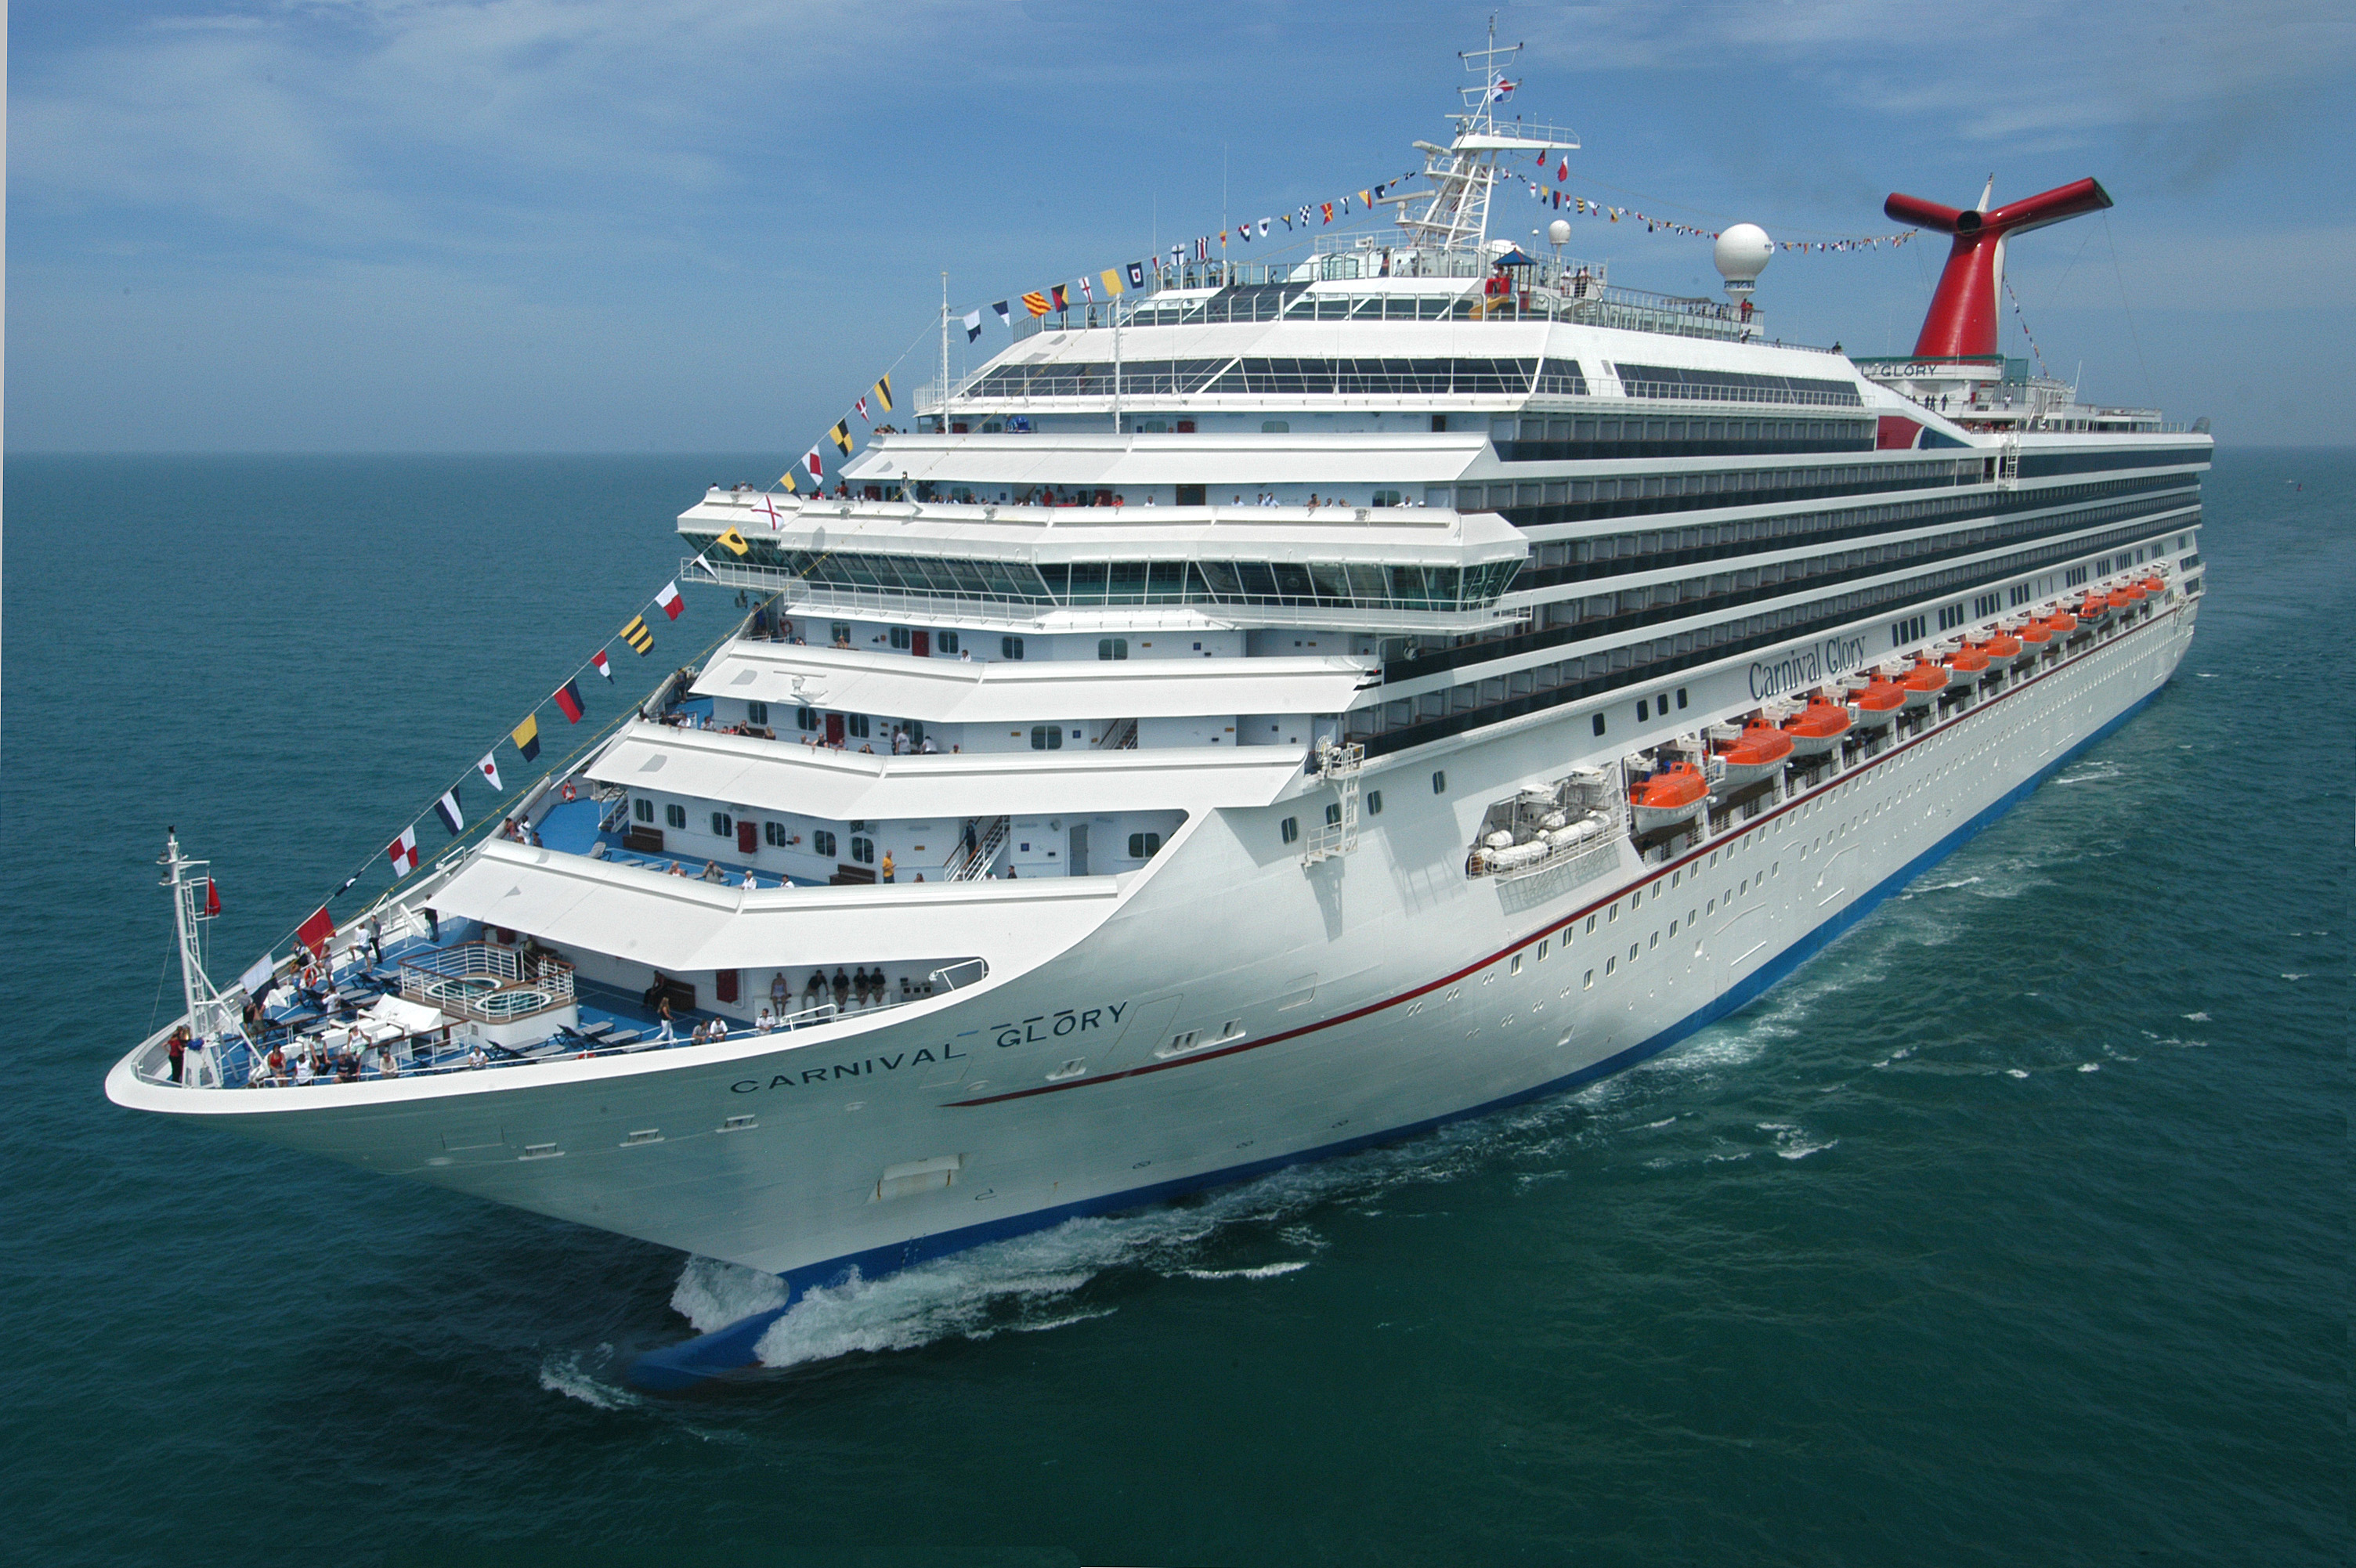 Carnival Glory Launches Year-Round Service from New Orleans